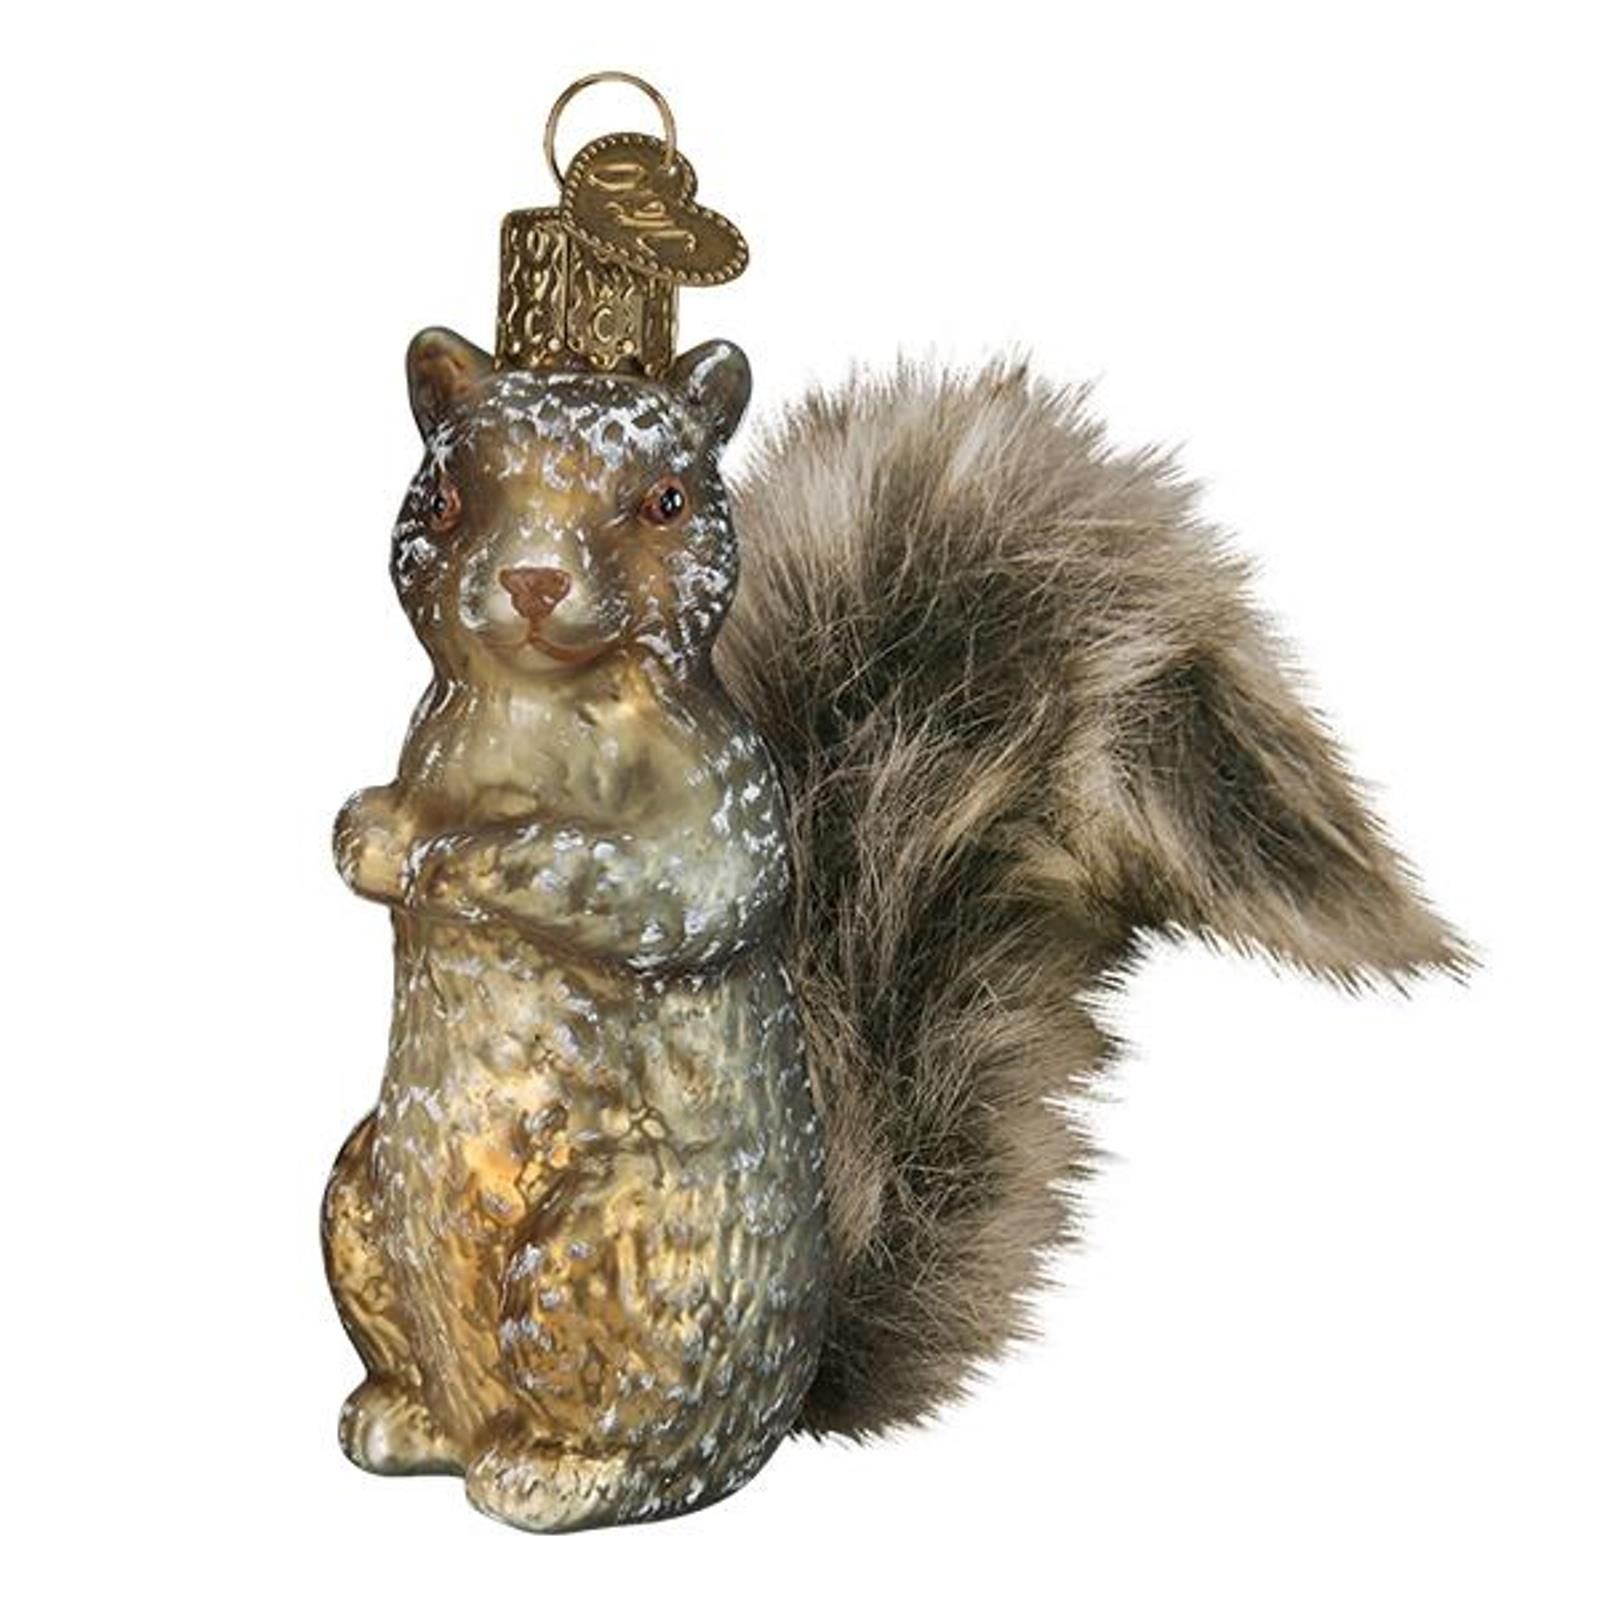 Christmas Squirrel.Details About Old World Christmas Vintage Inspired Squirrel Holiday Ornament Glass